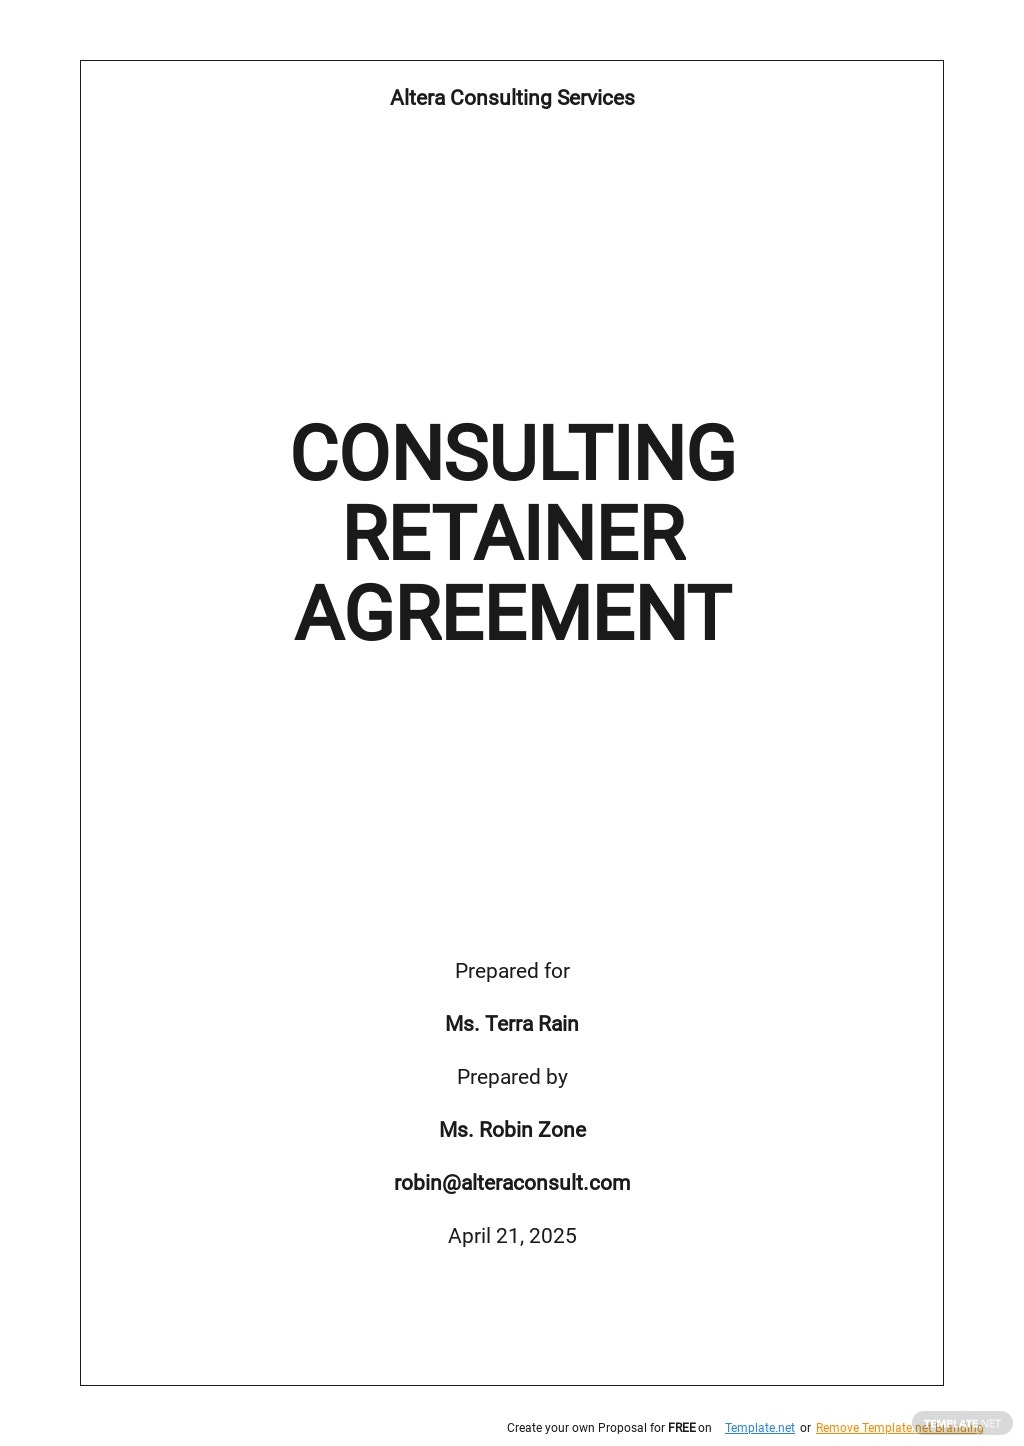 Consulting Retainer Agreement Template.jpe